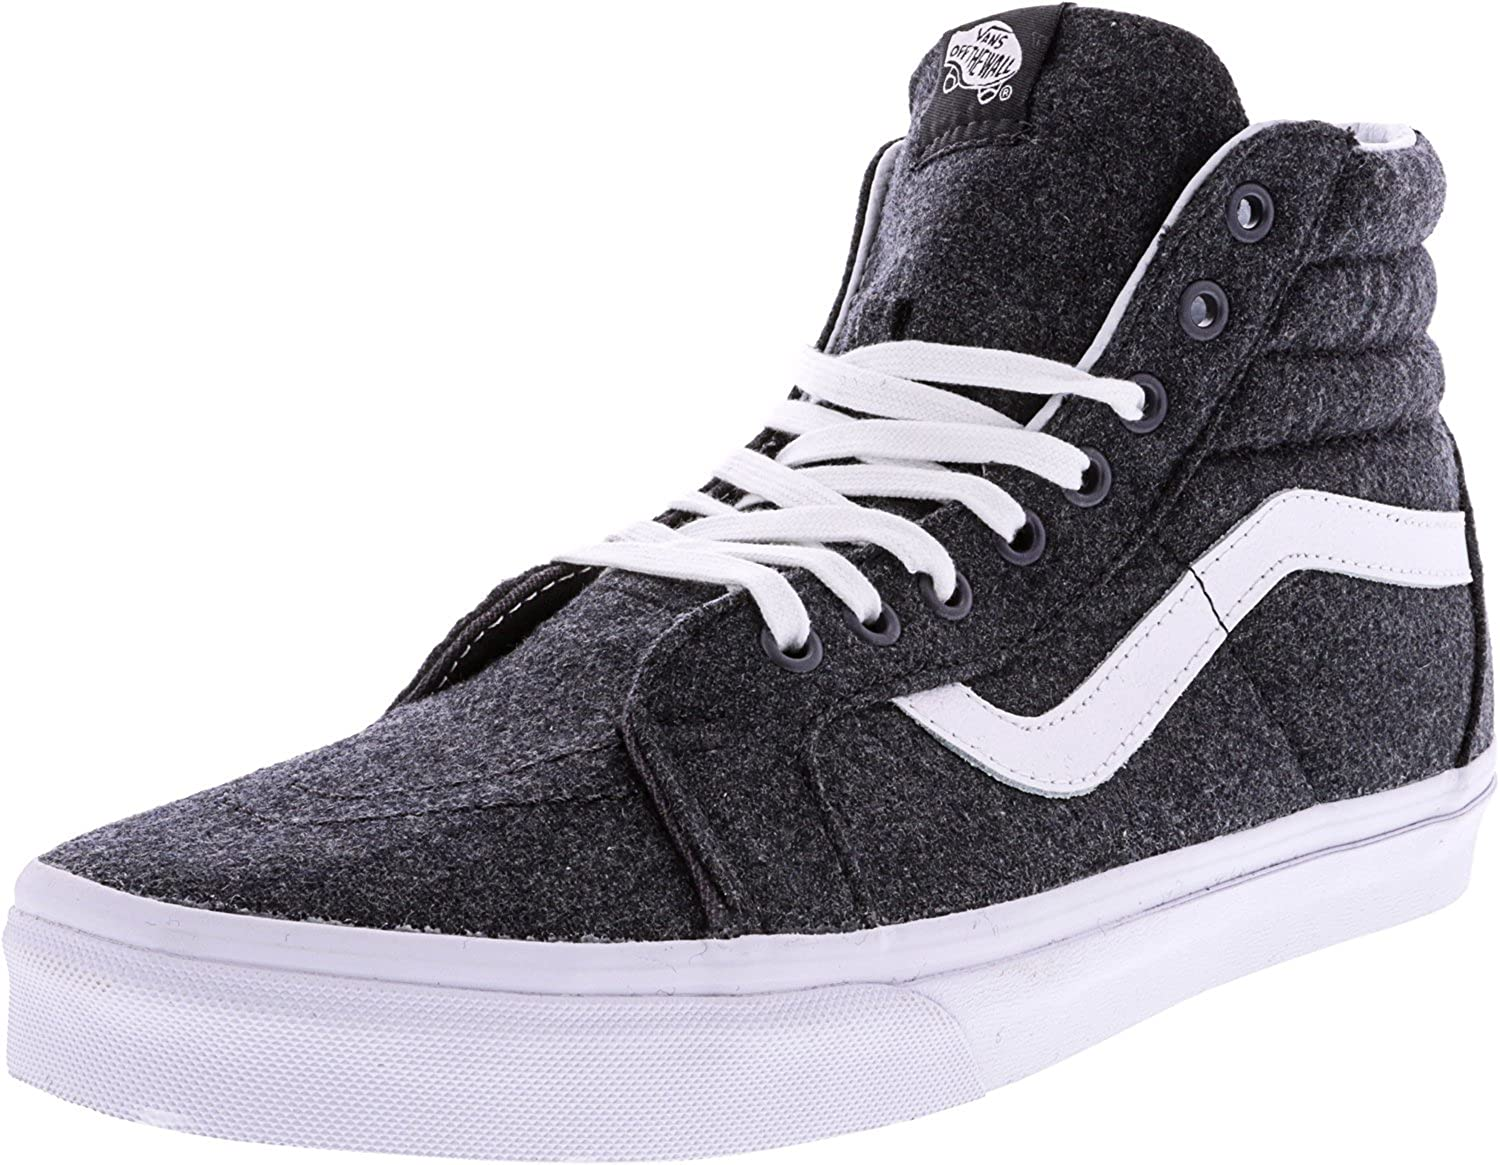 d420906428c Vans Men s Sk8-hi Reissue Skate Vulcanized High Top Sneakers Charcoal True  White 8 M US Women   6.5  Buy Online at Low Prices in India - Amazon.in